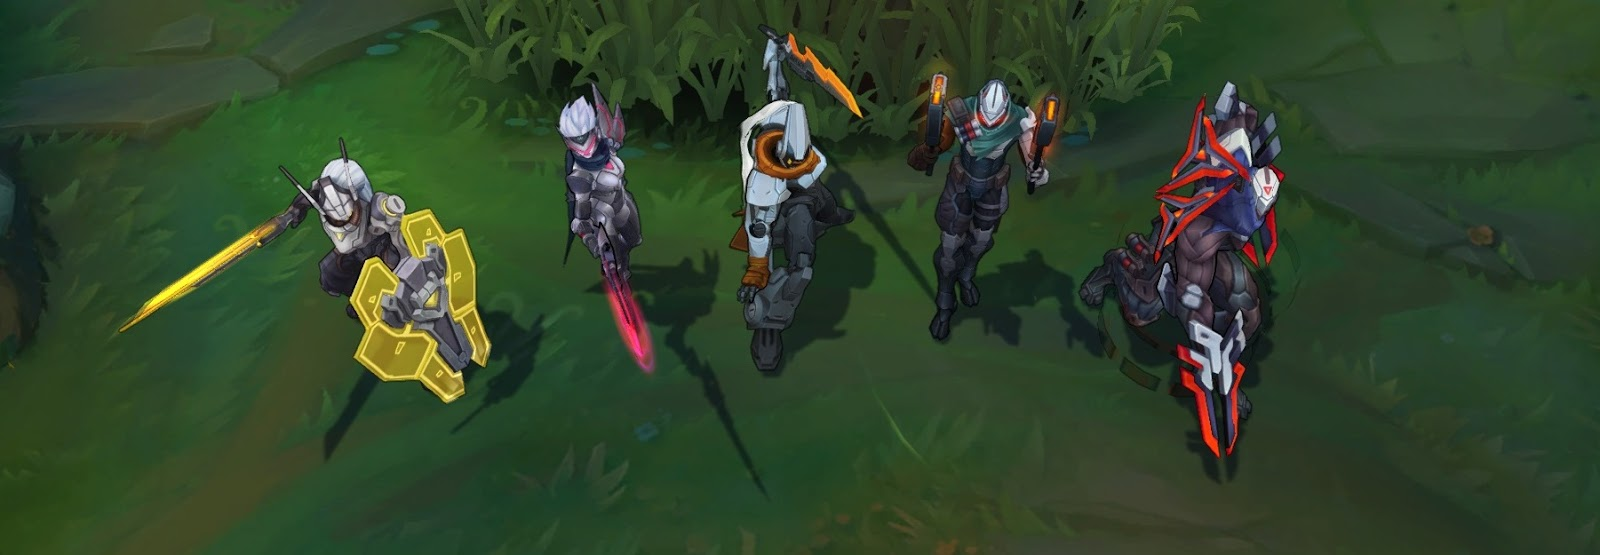 Surrender At 20 820 Pbe Update Project Skins For Master Yi Fiora